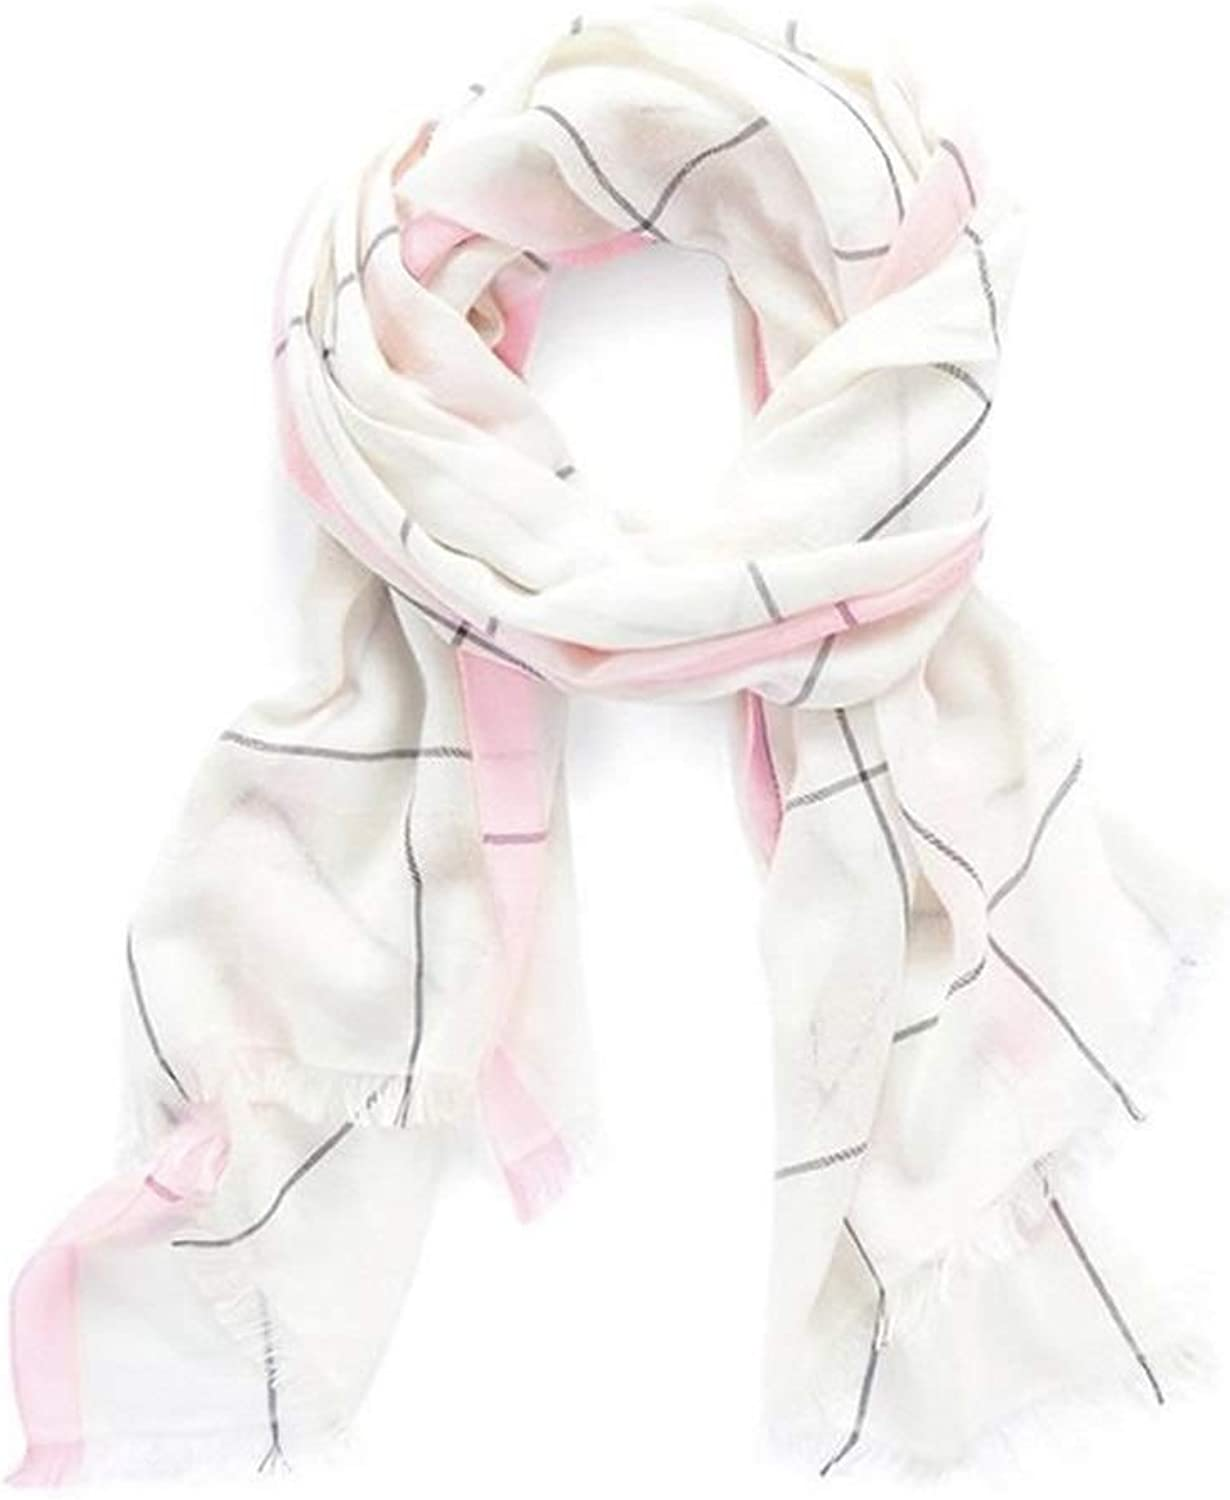 JUN Plaid Scarf Female Long Section Soft and Comfortable Shawl DualUse 78.7x27.6in (color   Pink)